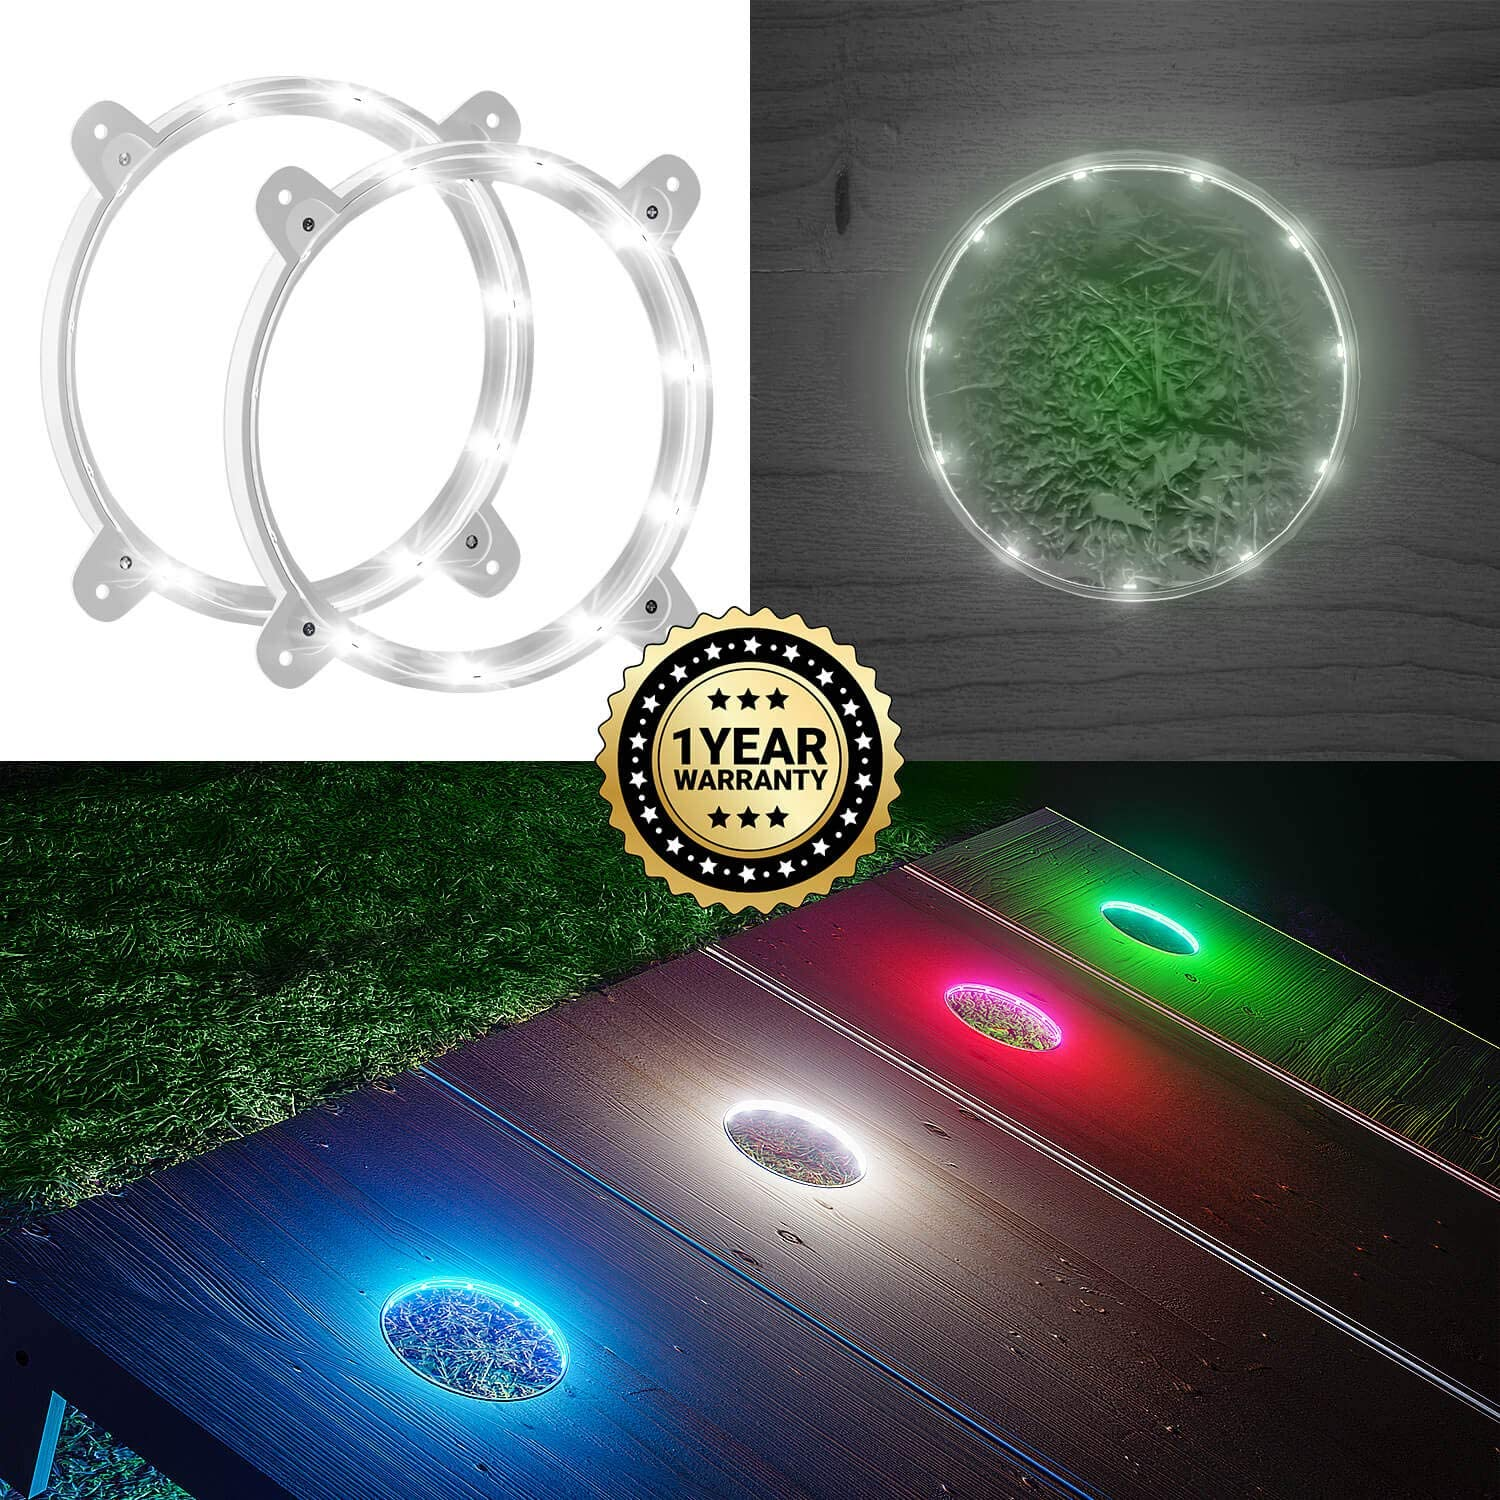 IMMOBIUS Cornhole LED Board Lights so You Can Play at Night  (Set of 2) -Choose from 4 colors- 1 Year Replacement Warranty, Sturdy Build, Lasts 100+ Hours on 2 AA Batteries